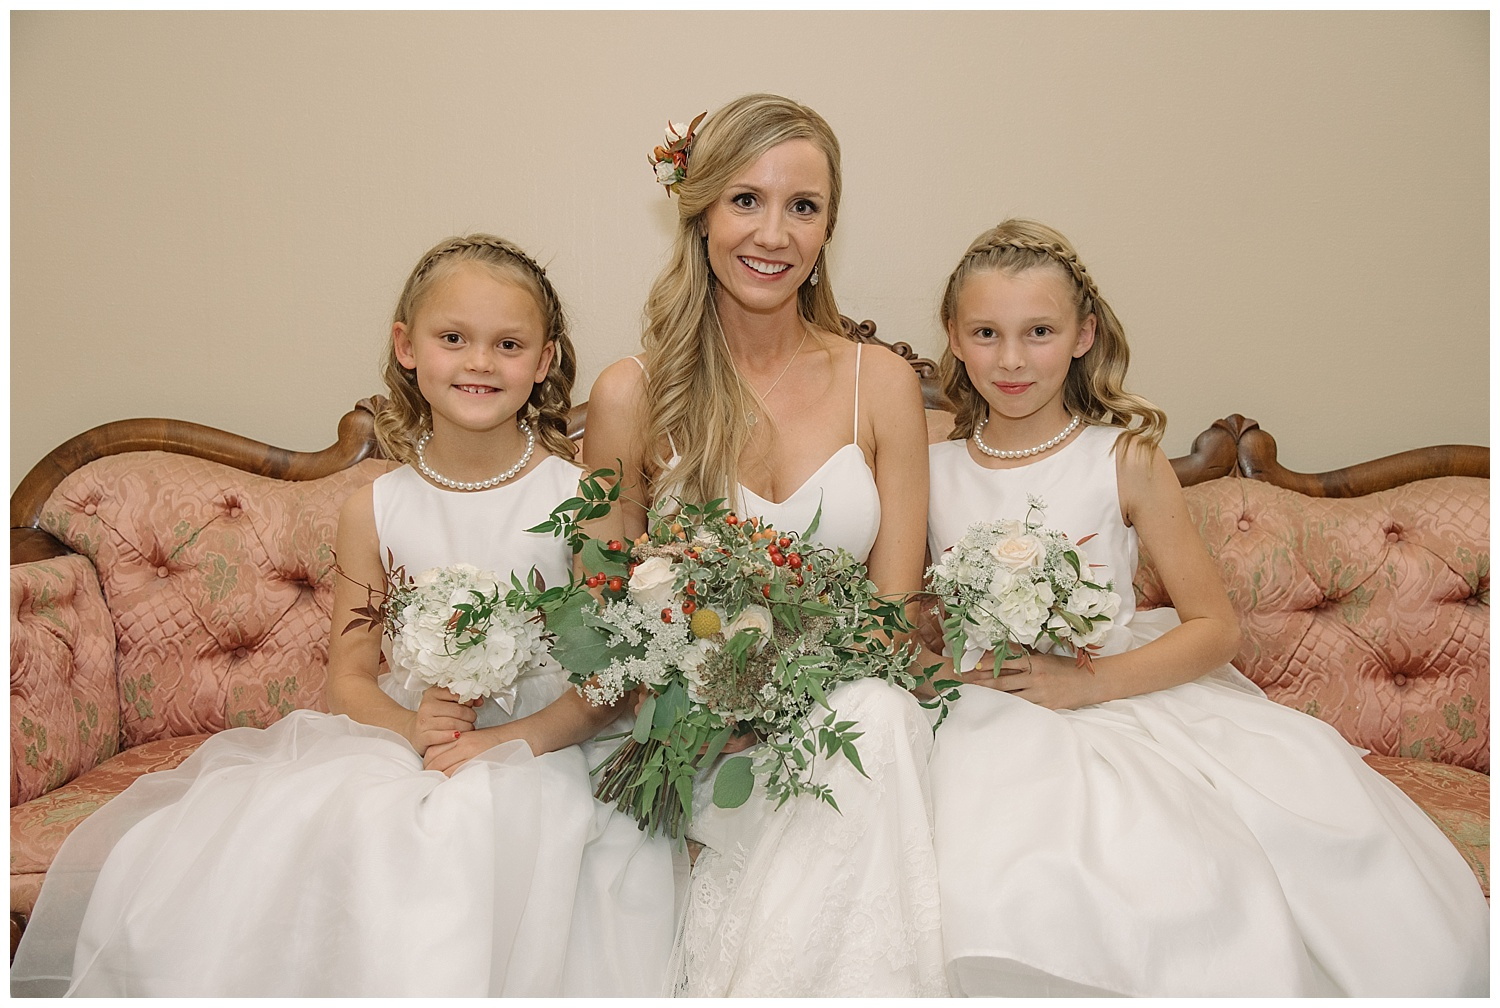 Bride with Flower Girls | Lindsey and Jeff's Intimate Wedding at Grant Humphrey's Mansion | Denver Colorado Photographer | Farm Wedding Photographer | Apollo Fields Wedding Photojournalism